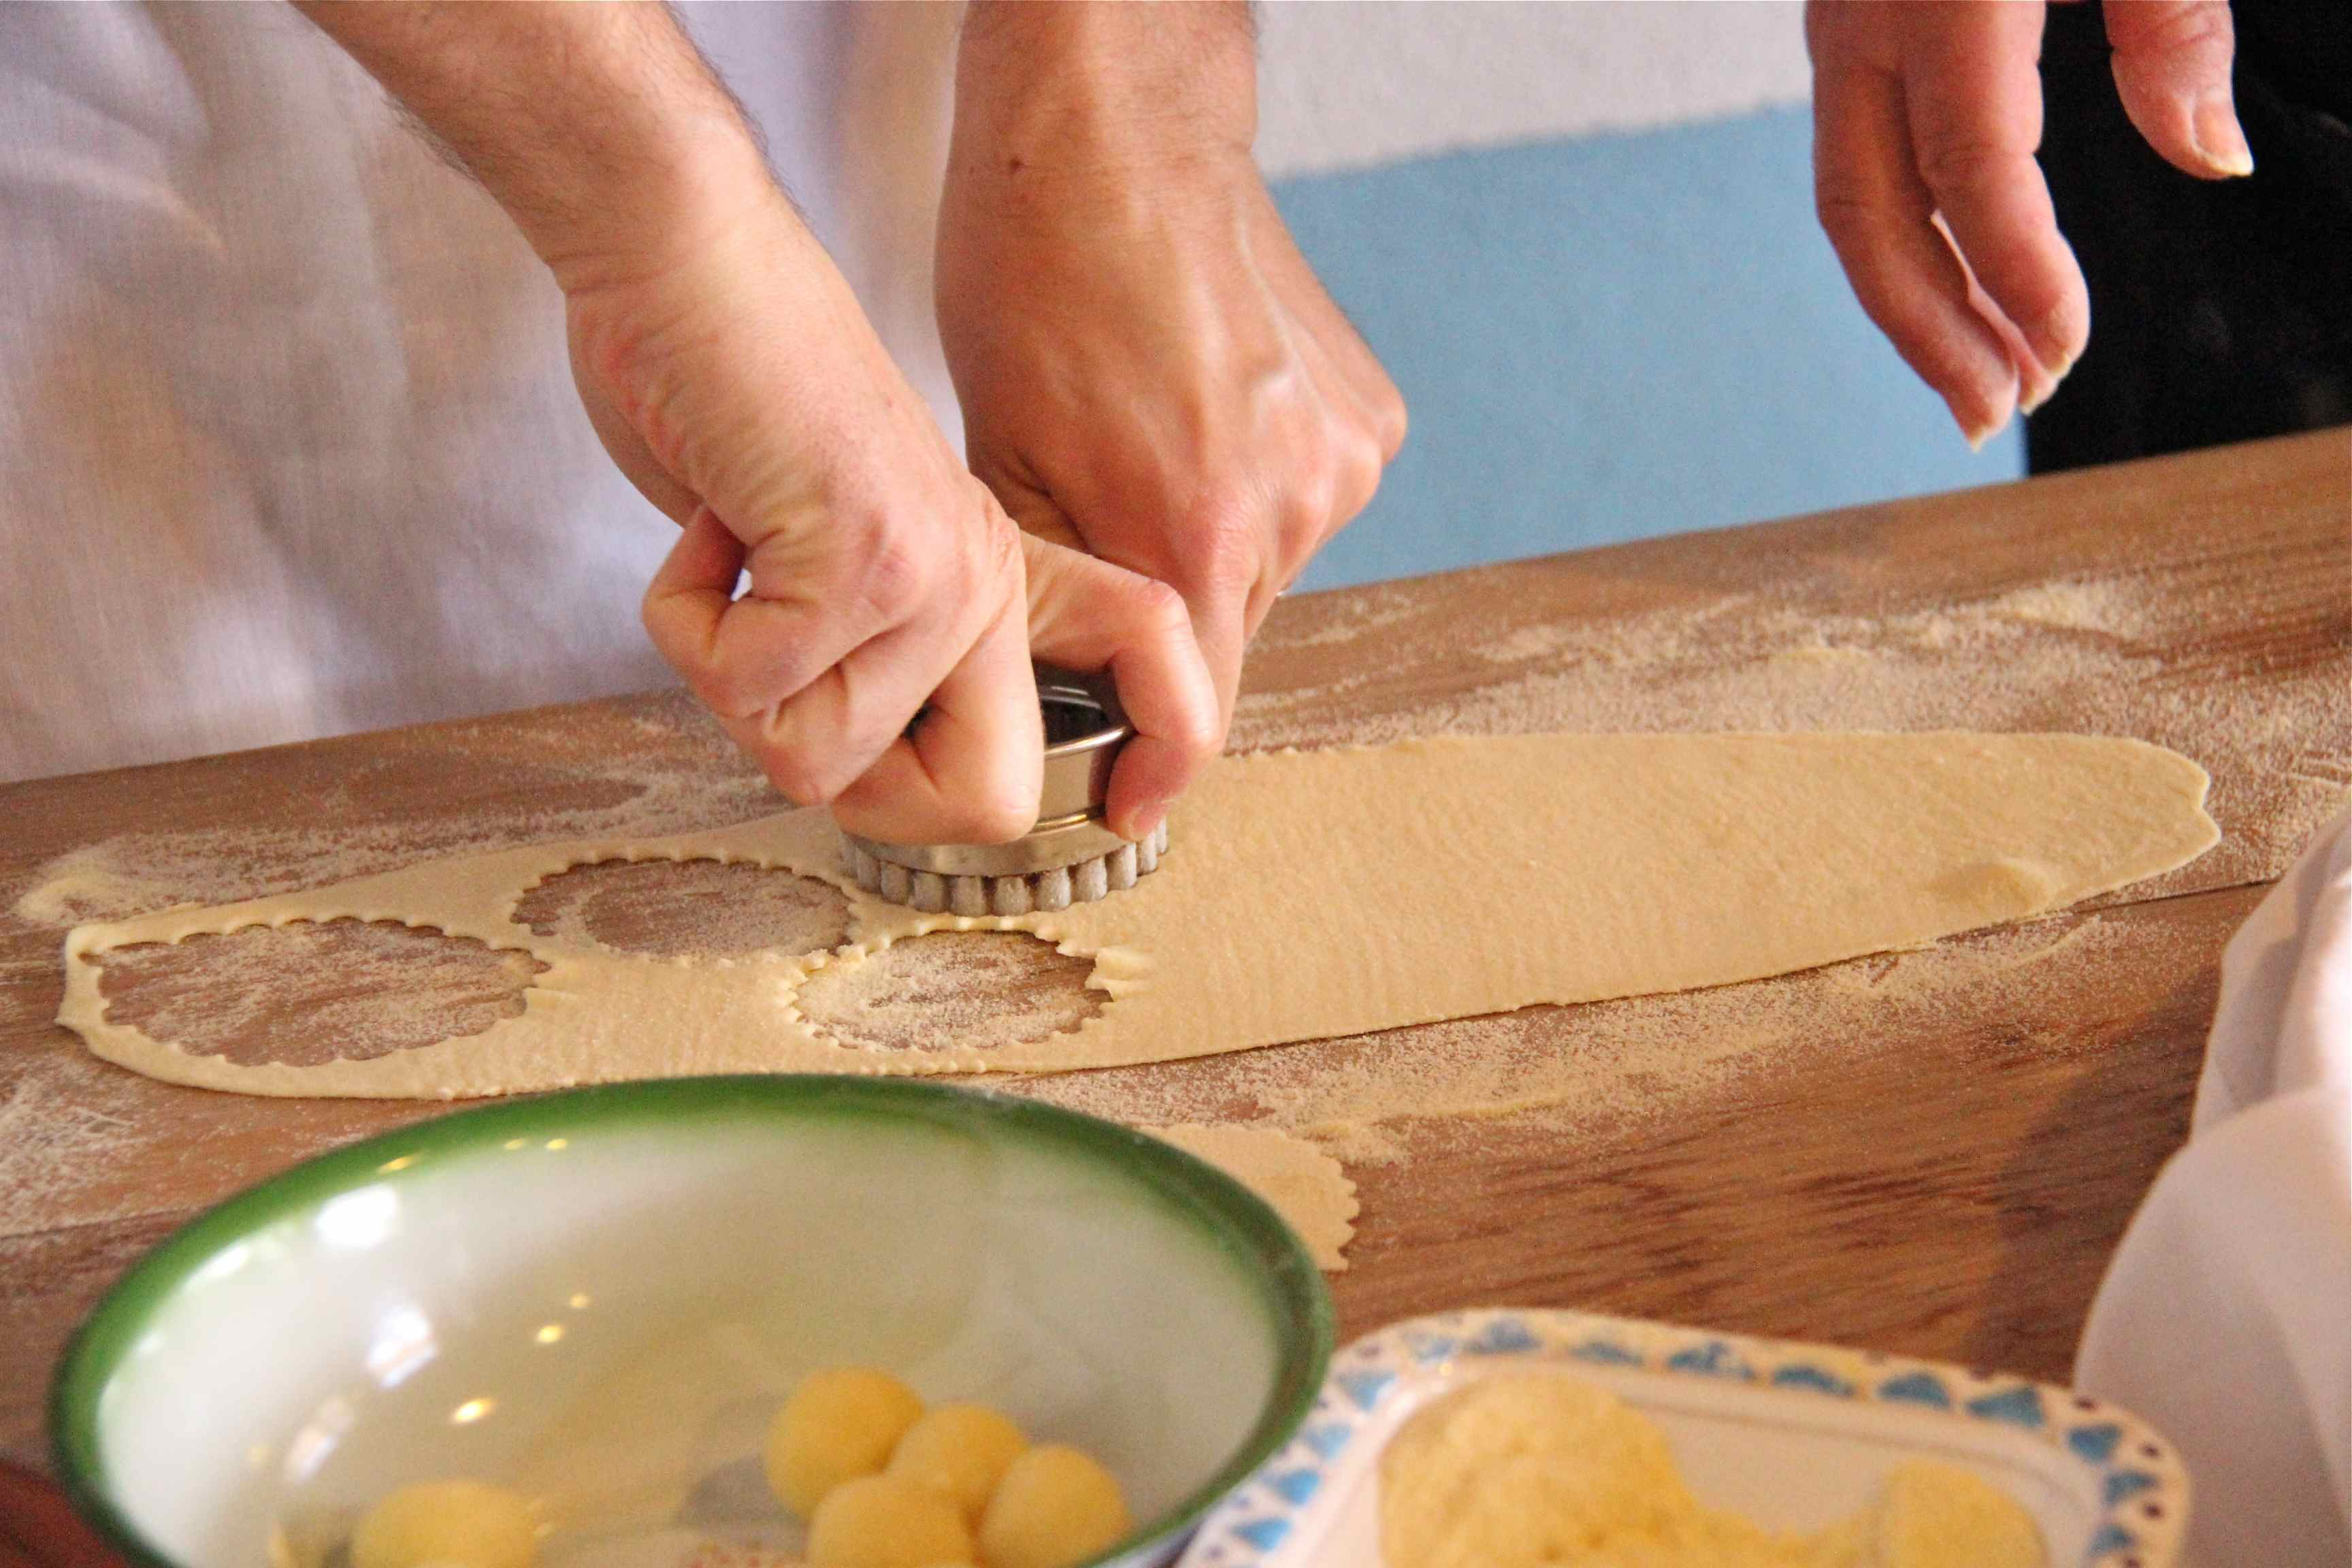 Cutting pasta dough